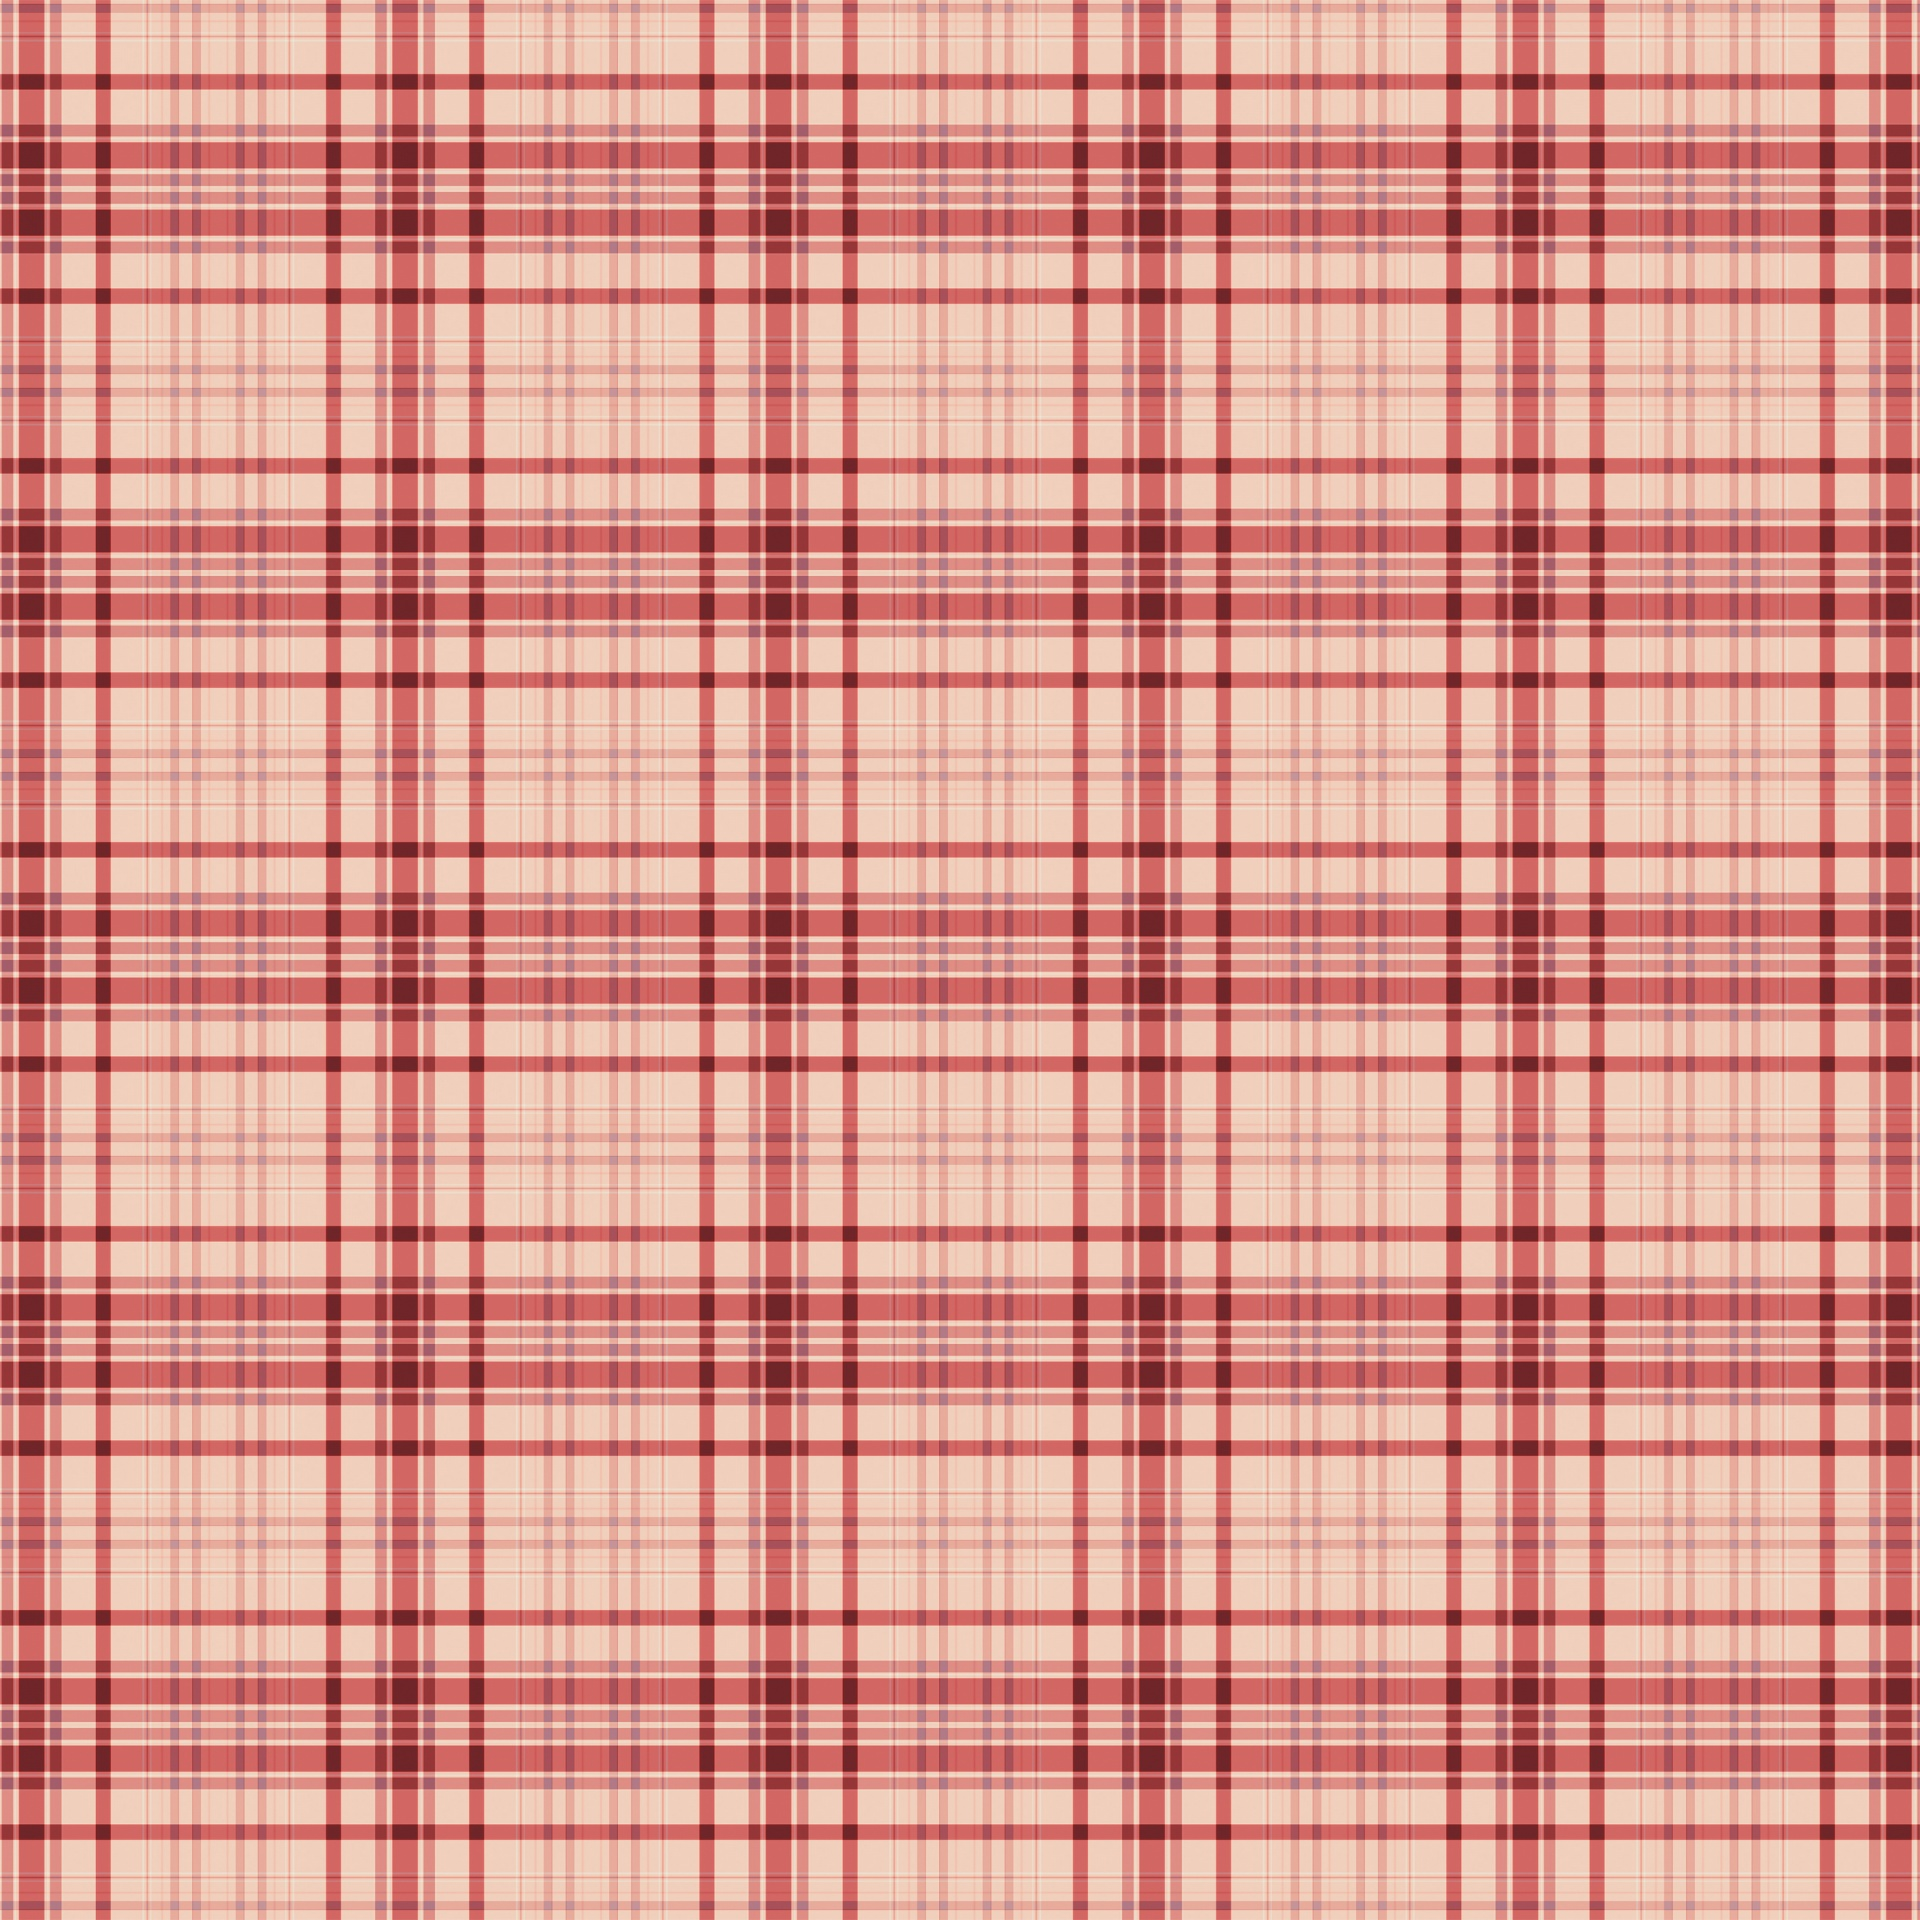 Check Background Red Plaid Free Stock Photo - Public Domain Pictures